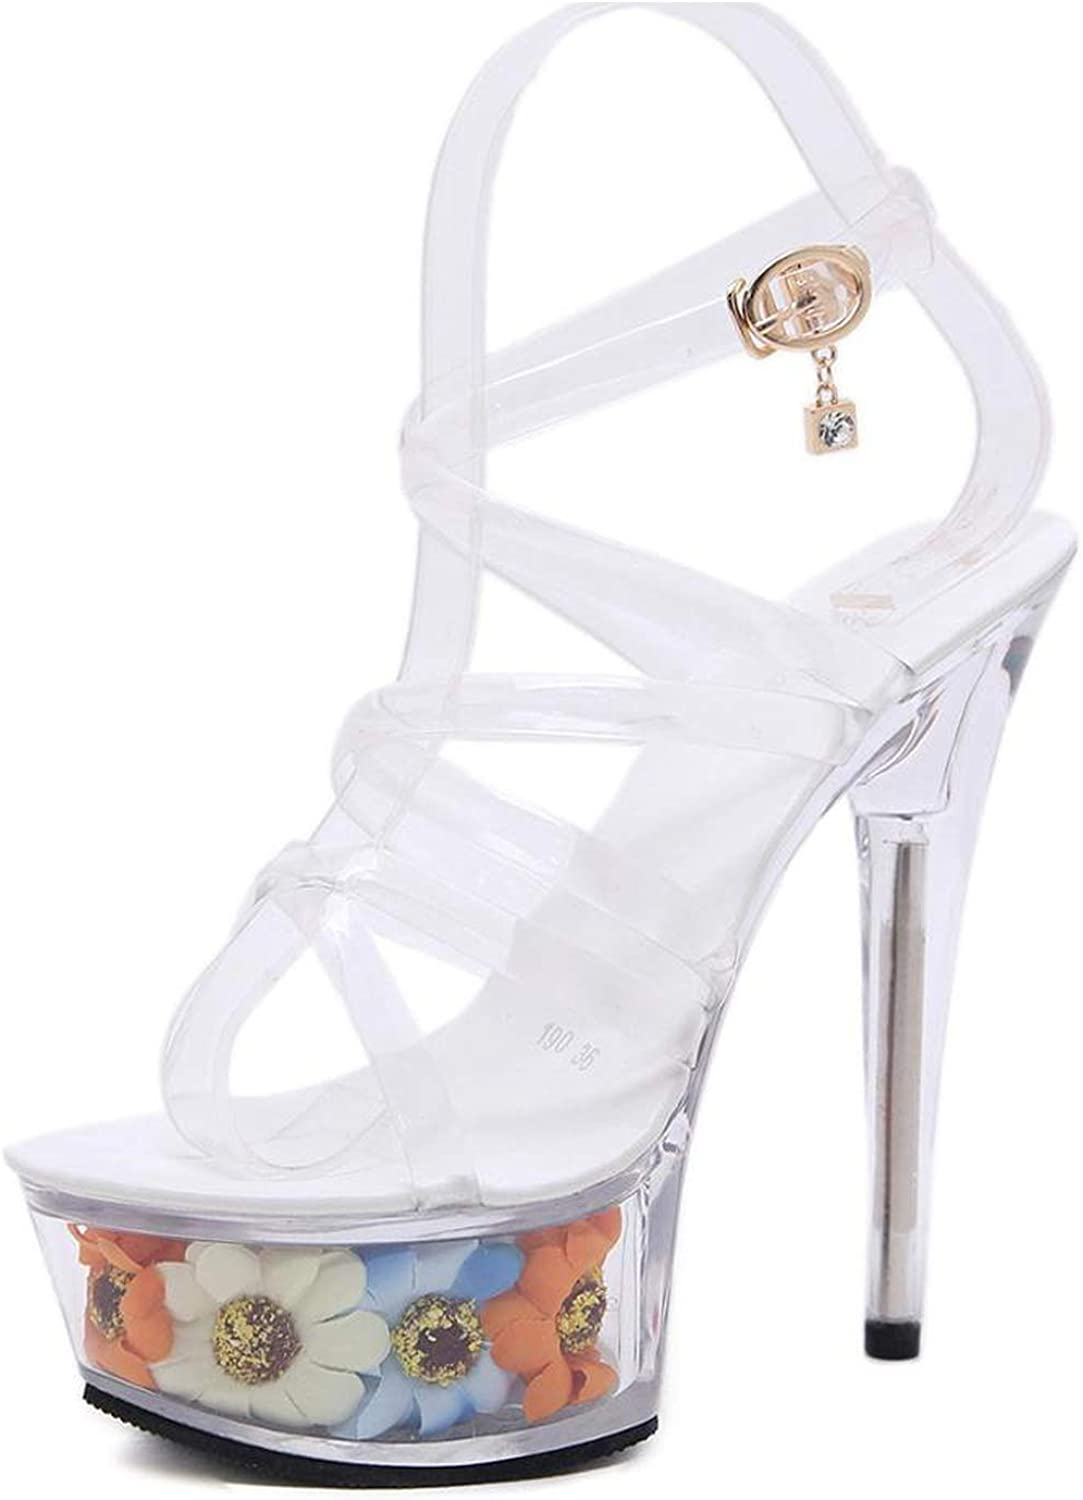 Women Fashion Sexy High Heel shoes 15Cm Fine Waterproof Table Sandals Crystal shoes Wedding shoes High Heels Lfd-193